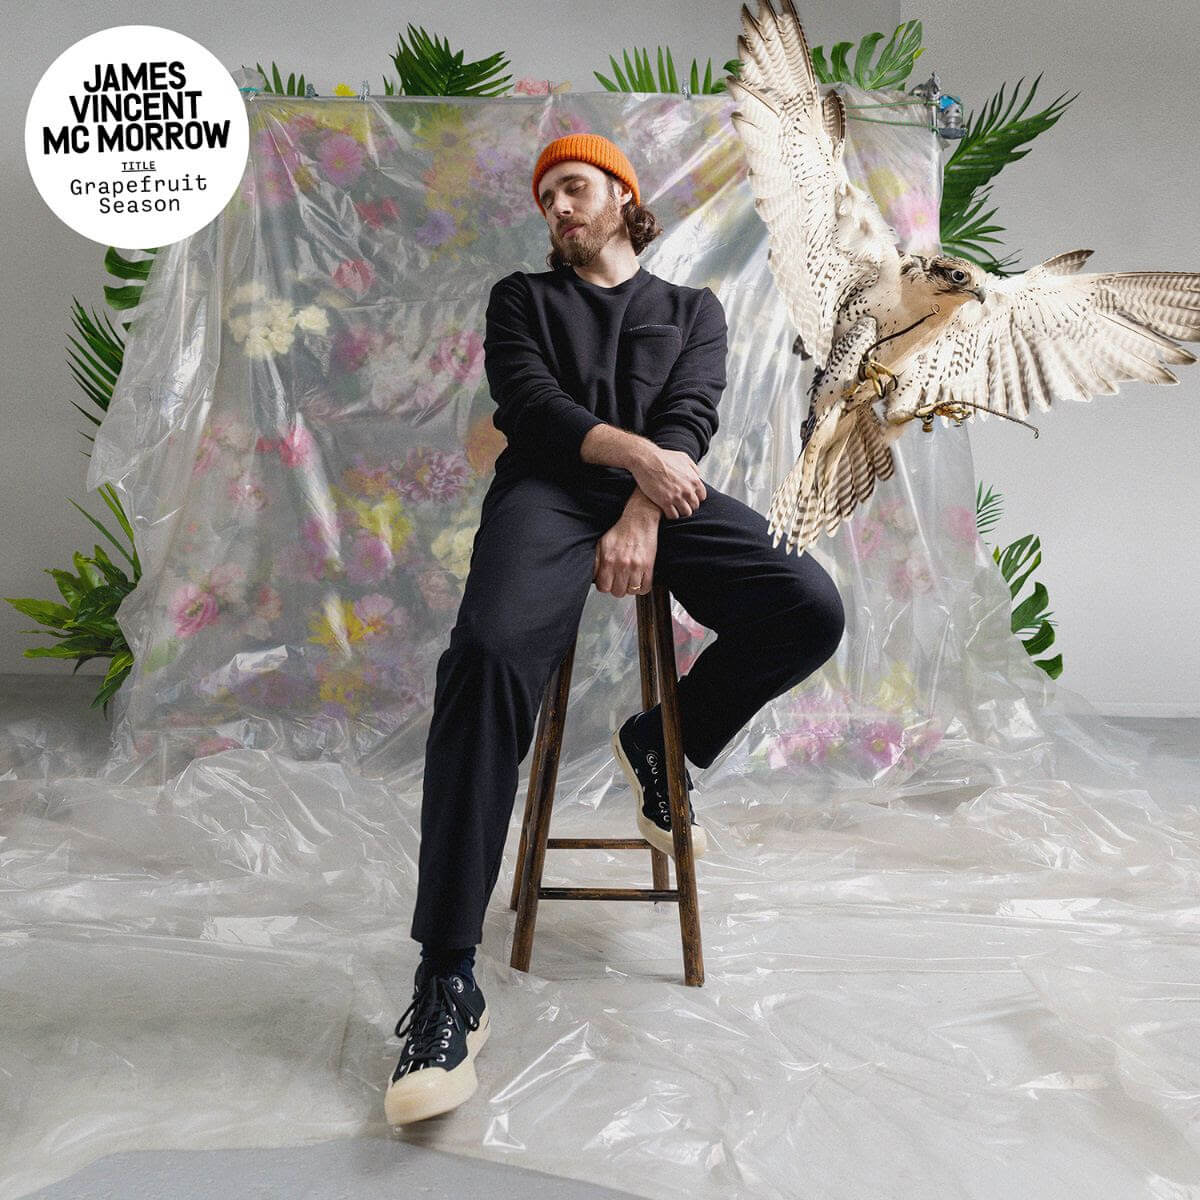 """""""Tru Love"""" by James Vincent McMorrow is Northern Transmissions Song of the Day. The track is off his forthcoming release Grapefruit Season"""